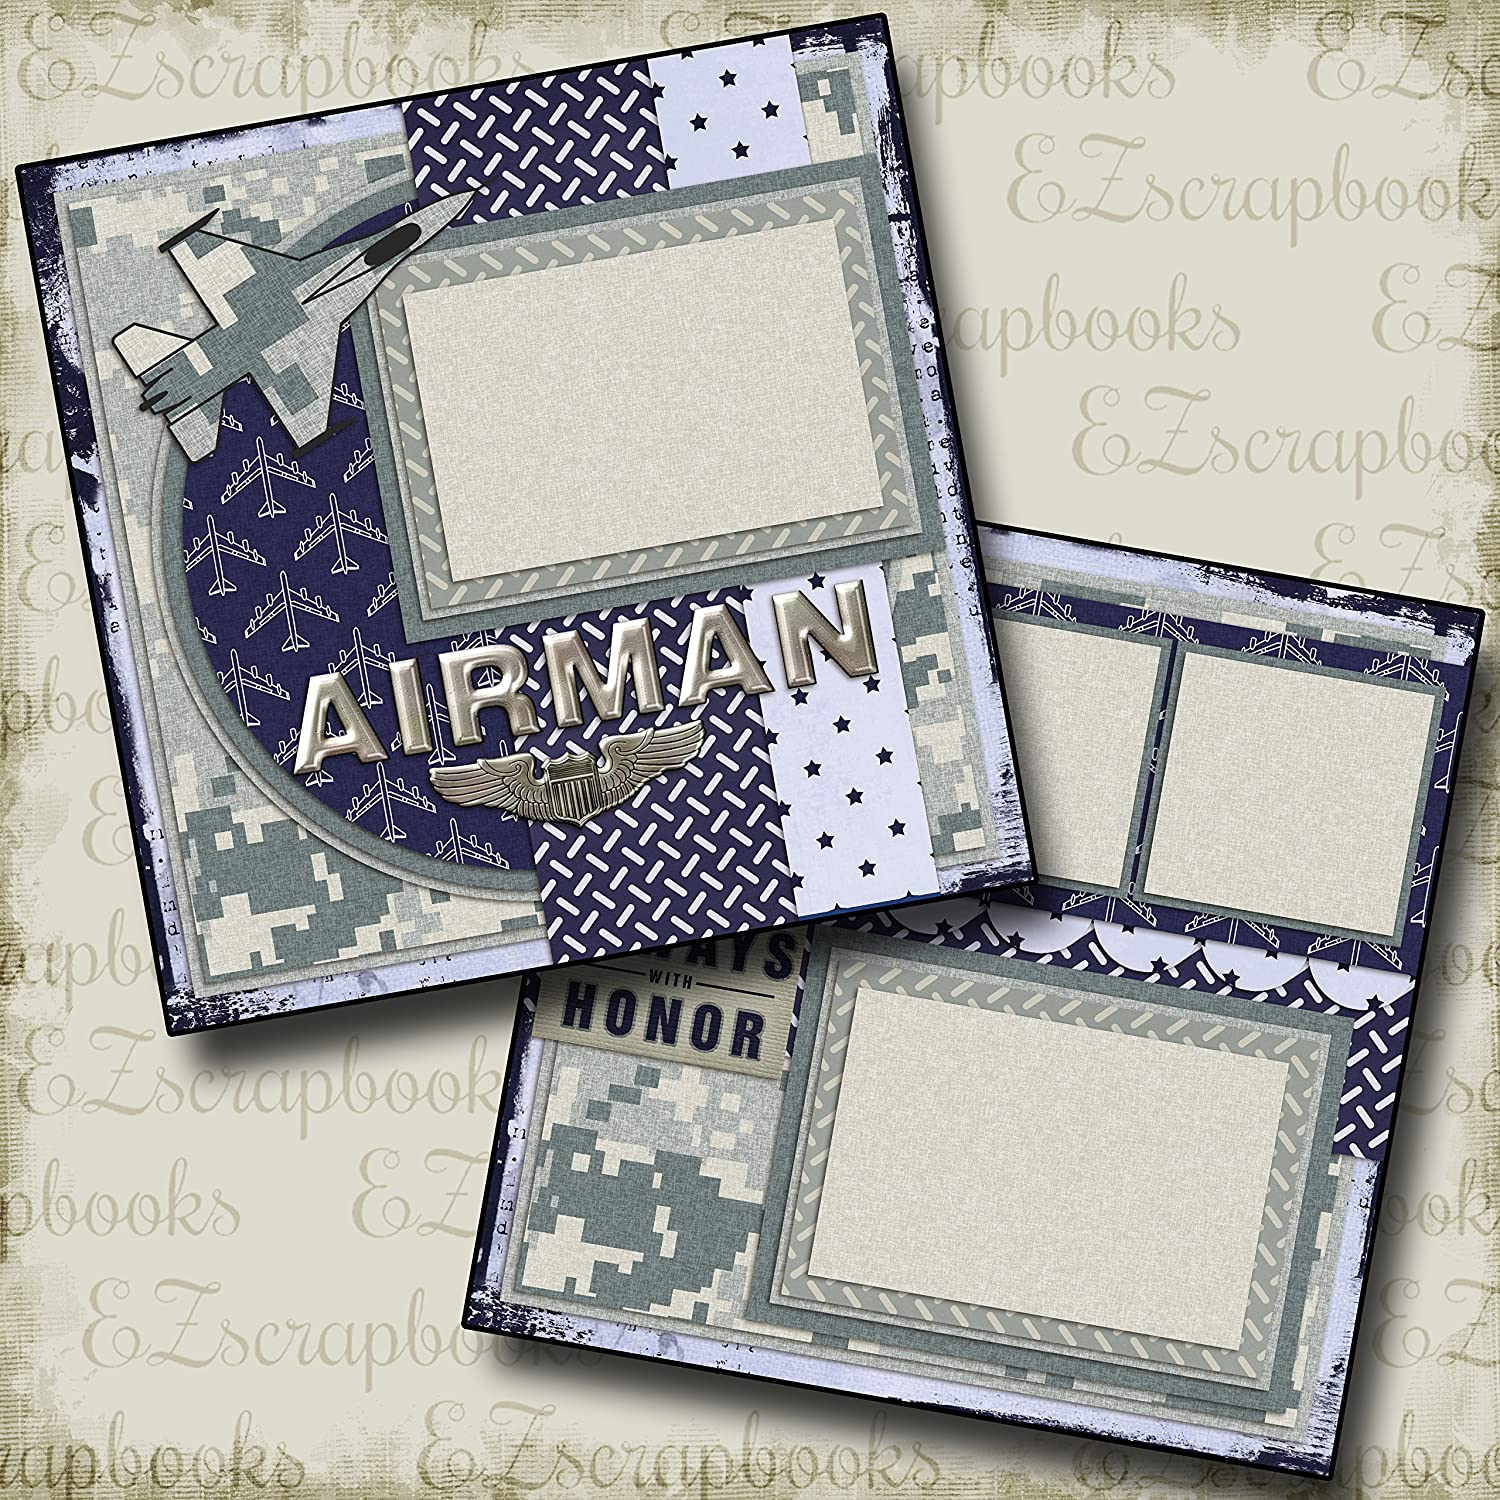 EZ Layout 136 AIR FORCE Premade Scrapbook Pages